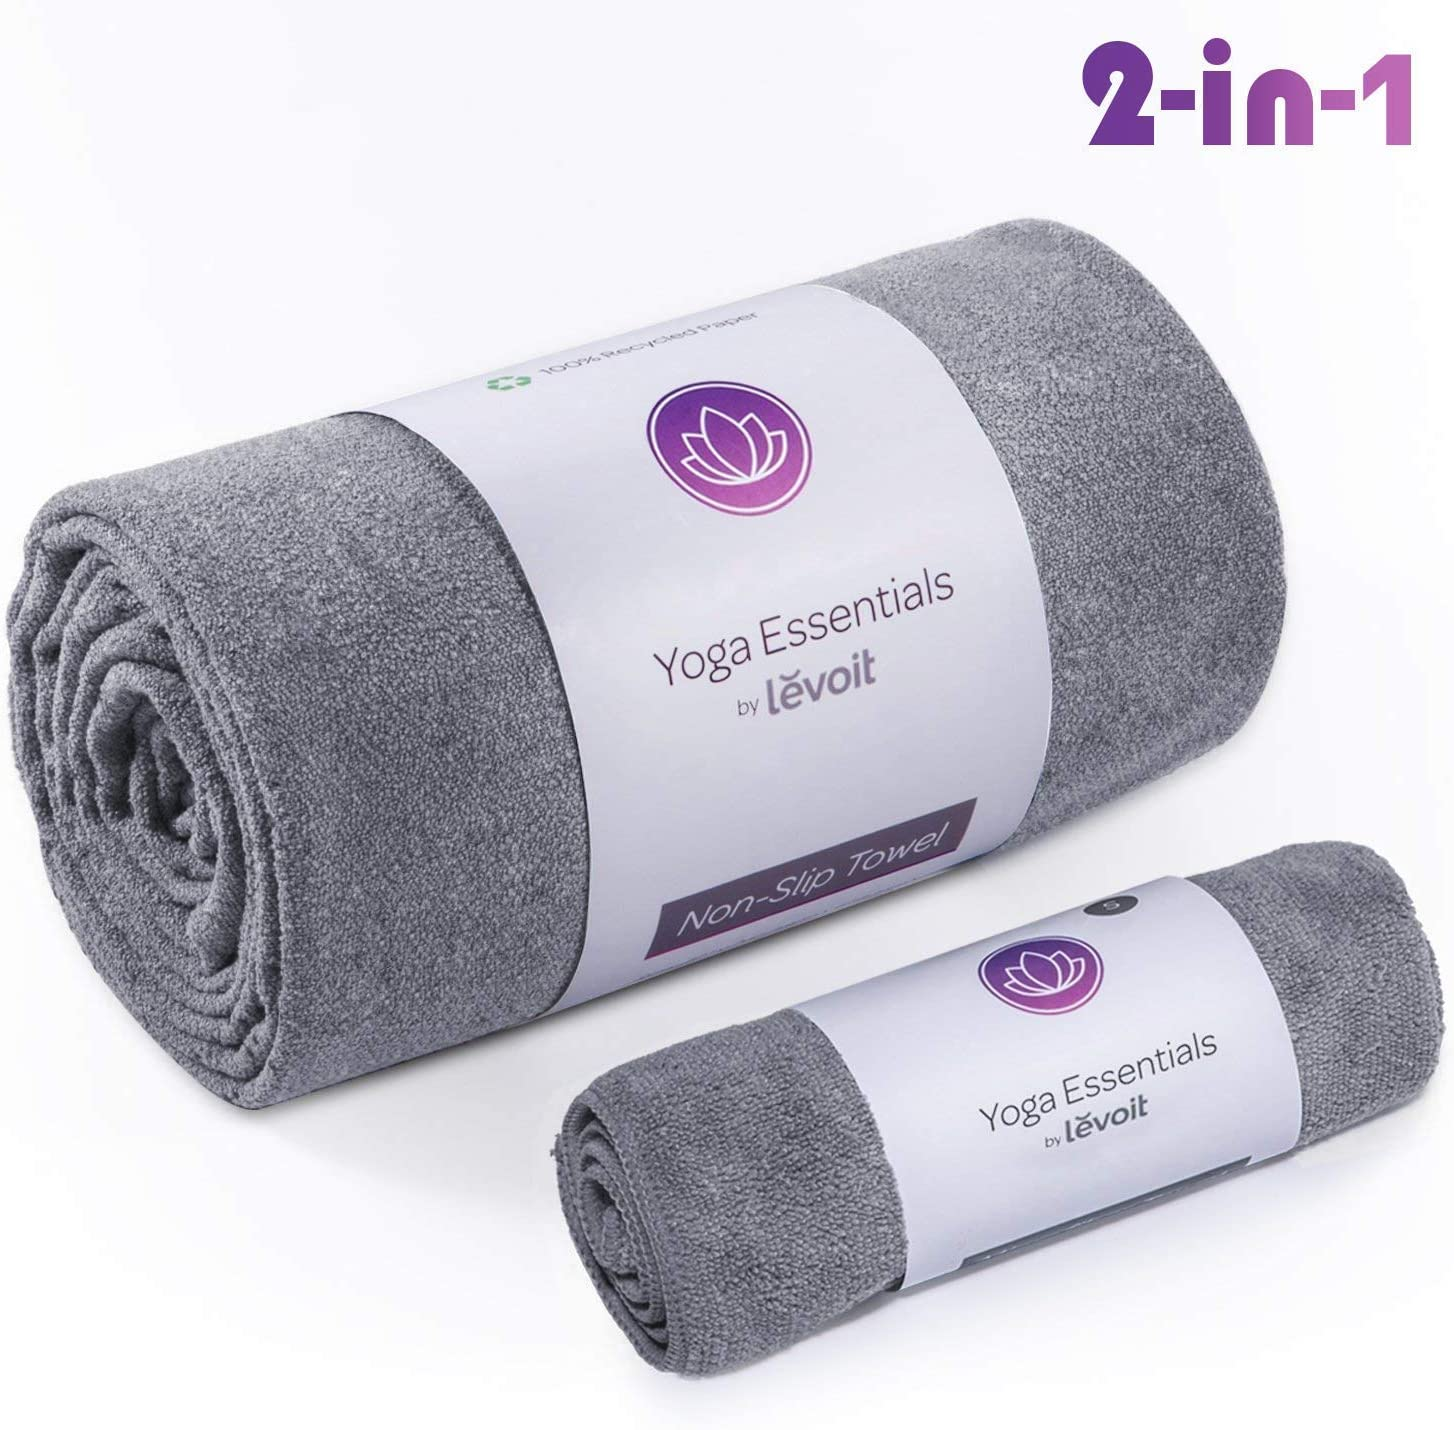 LEVOIT Yoga Mat Towel, Hot Yoga Non-Slip Microfiber Mat Towel, Hand Towel, 2 in 1 Set, Super Soft Sweat Absorbent Fast Dry, Ideal for Pilates, Bikram, Sports, Workout & More